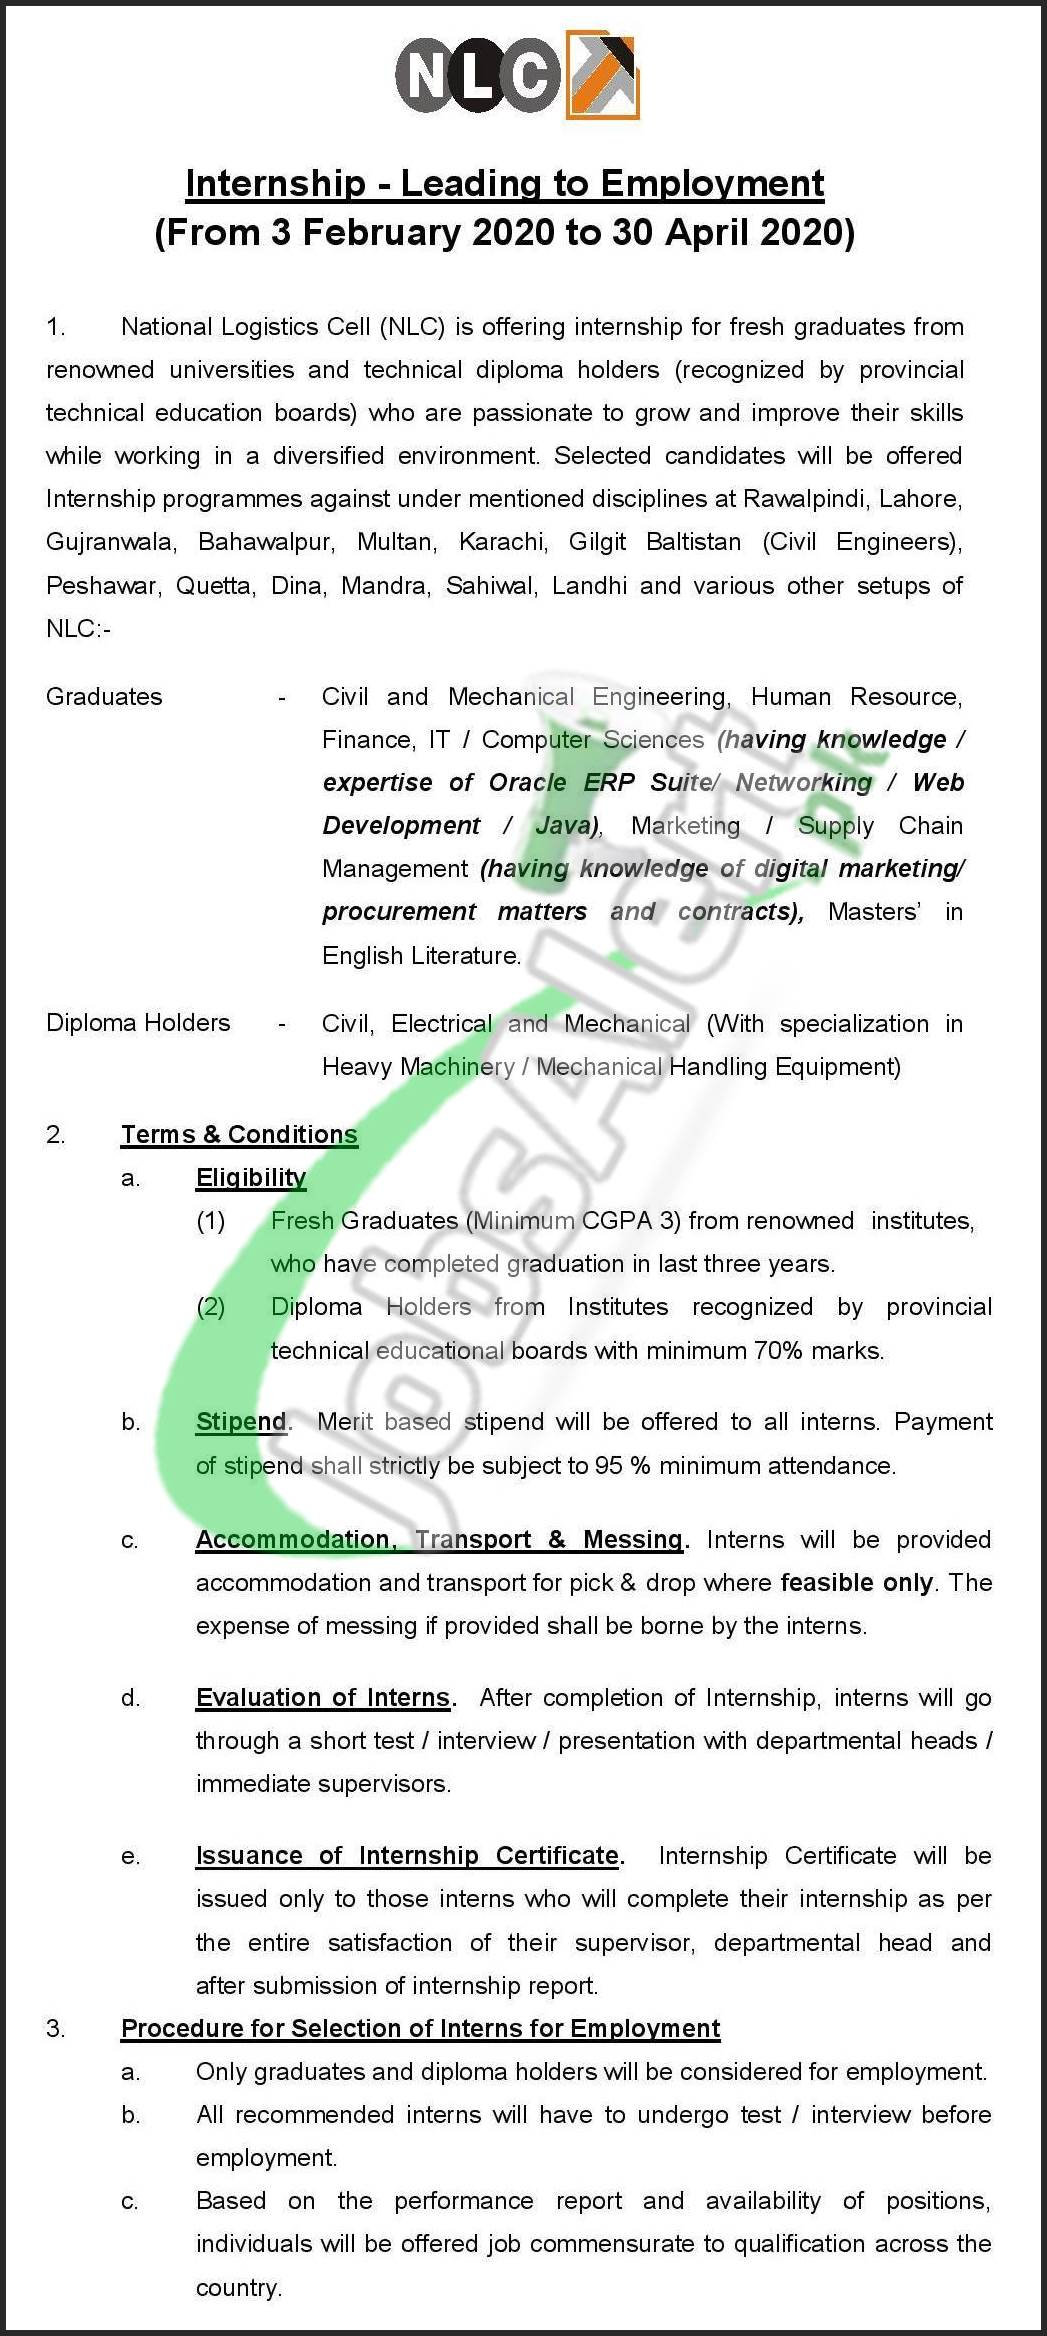 National Logistic Cell Internship - Leading To Employment